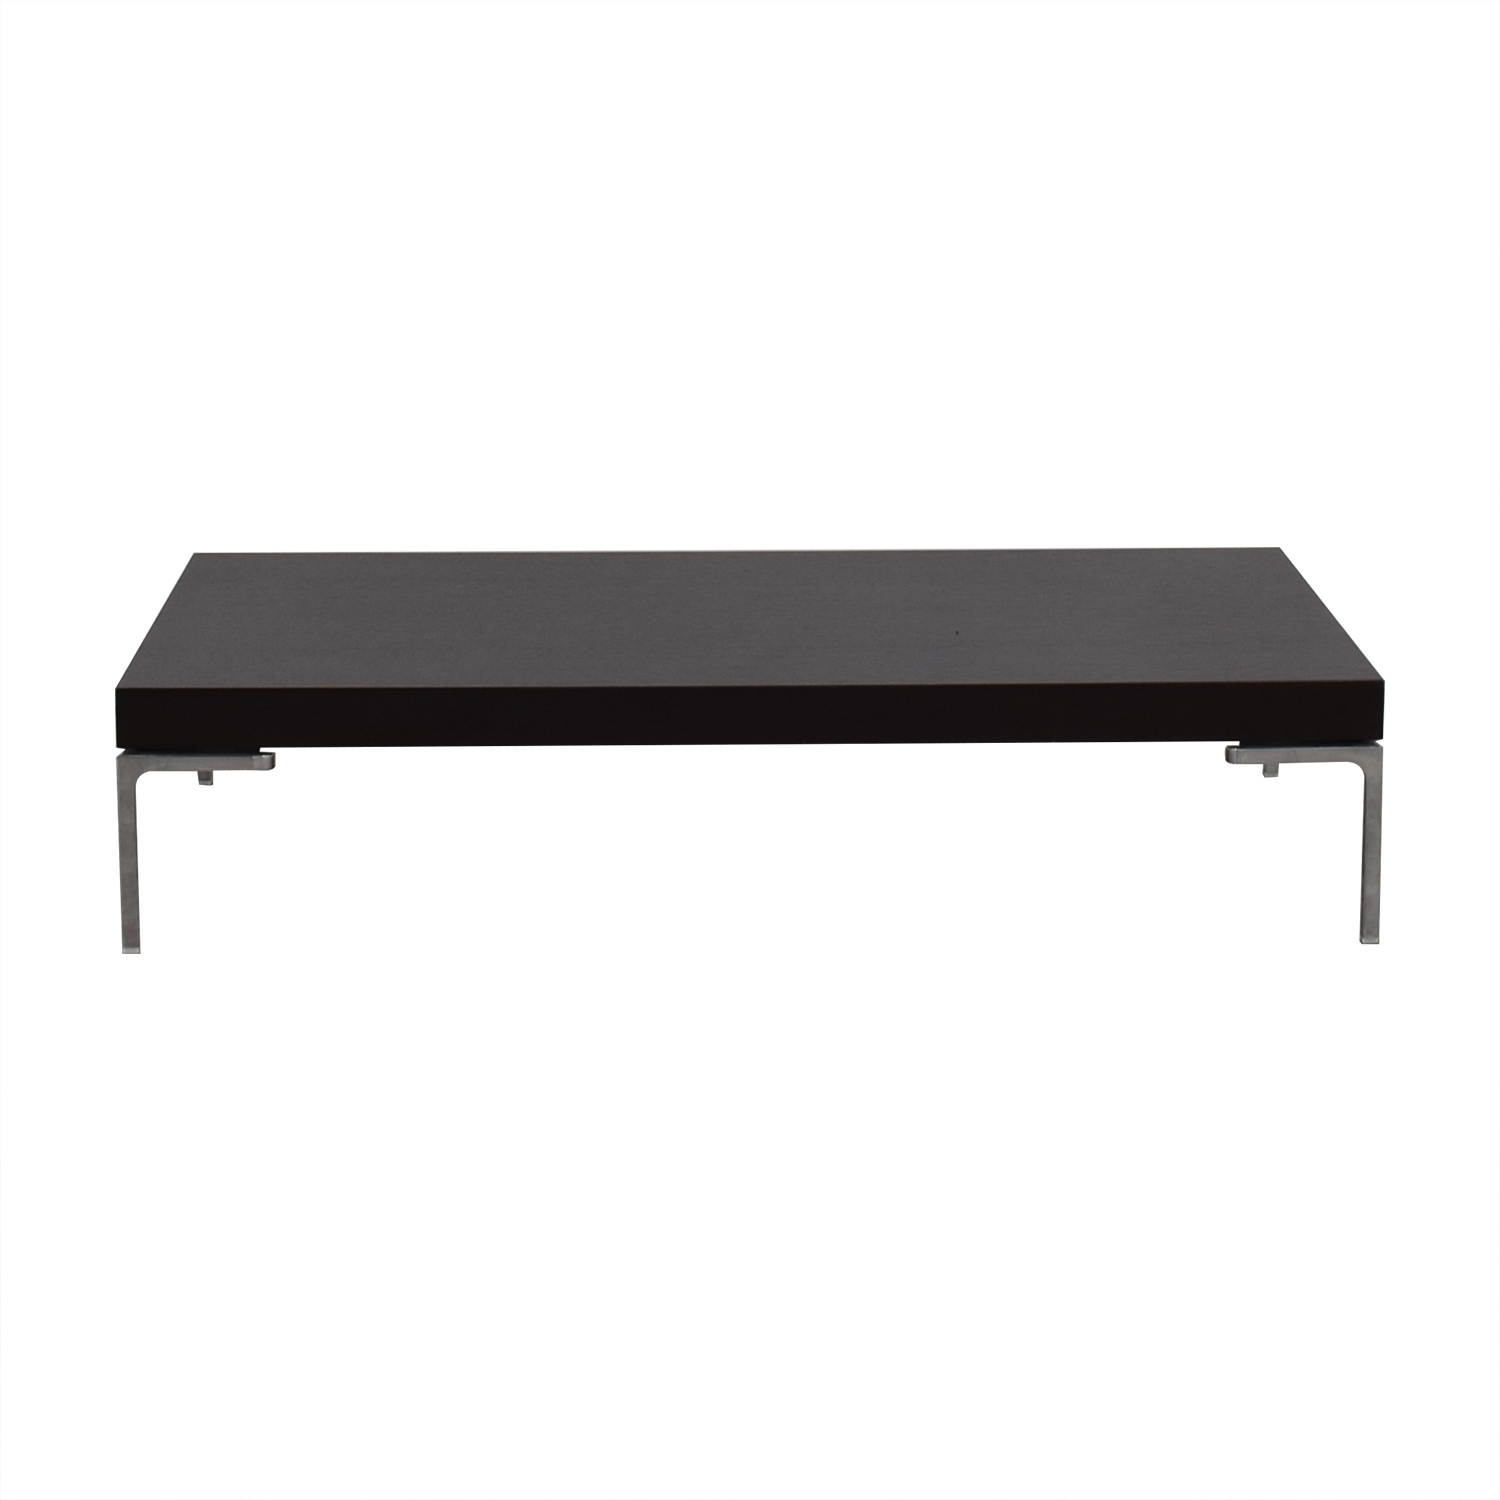 B&B Italia Dark Oak Coffee Table / Tables